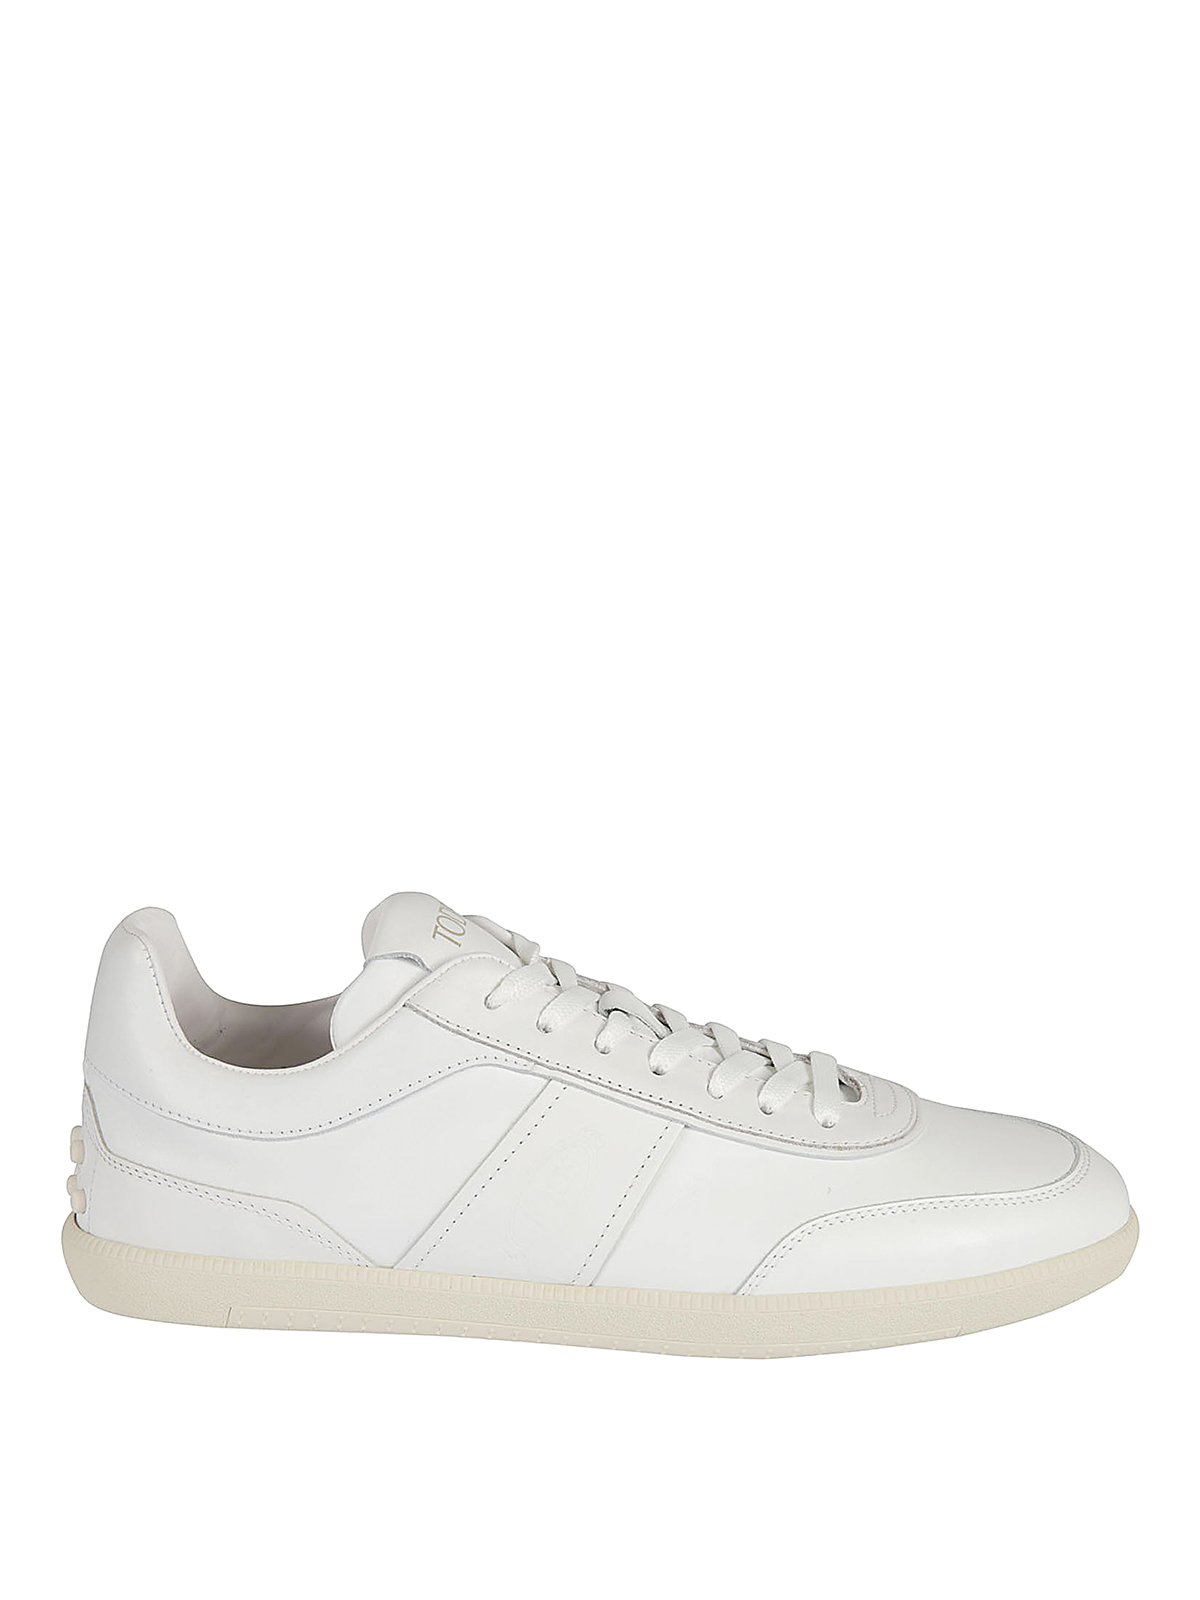 Tod's Leathers VINTAGE EFFECT LEATHER SNEAKERS